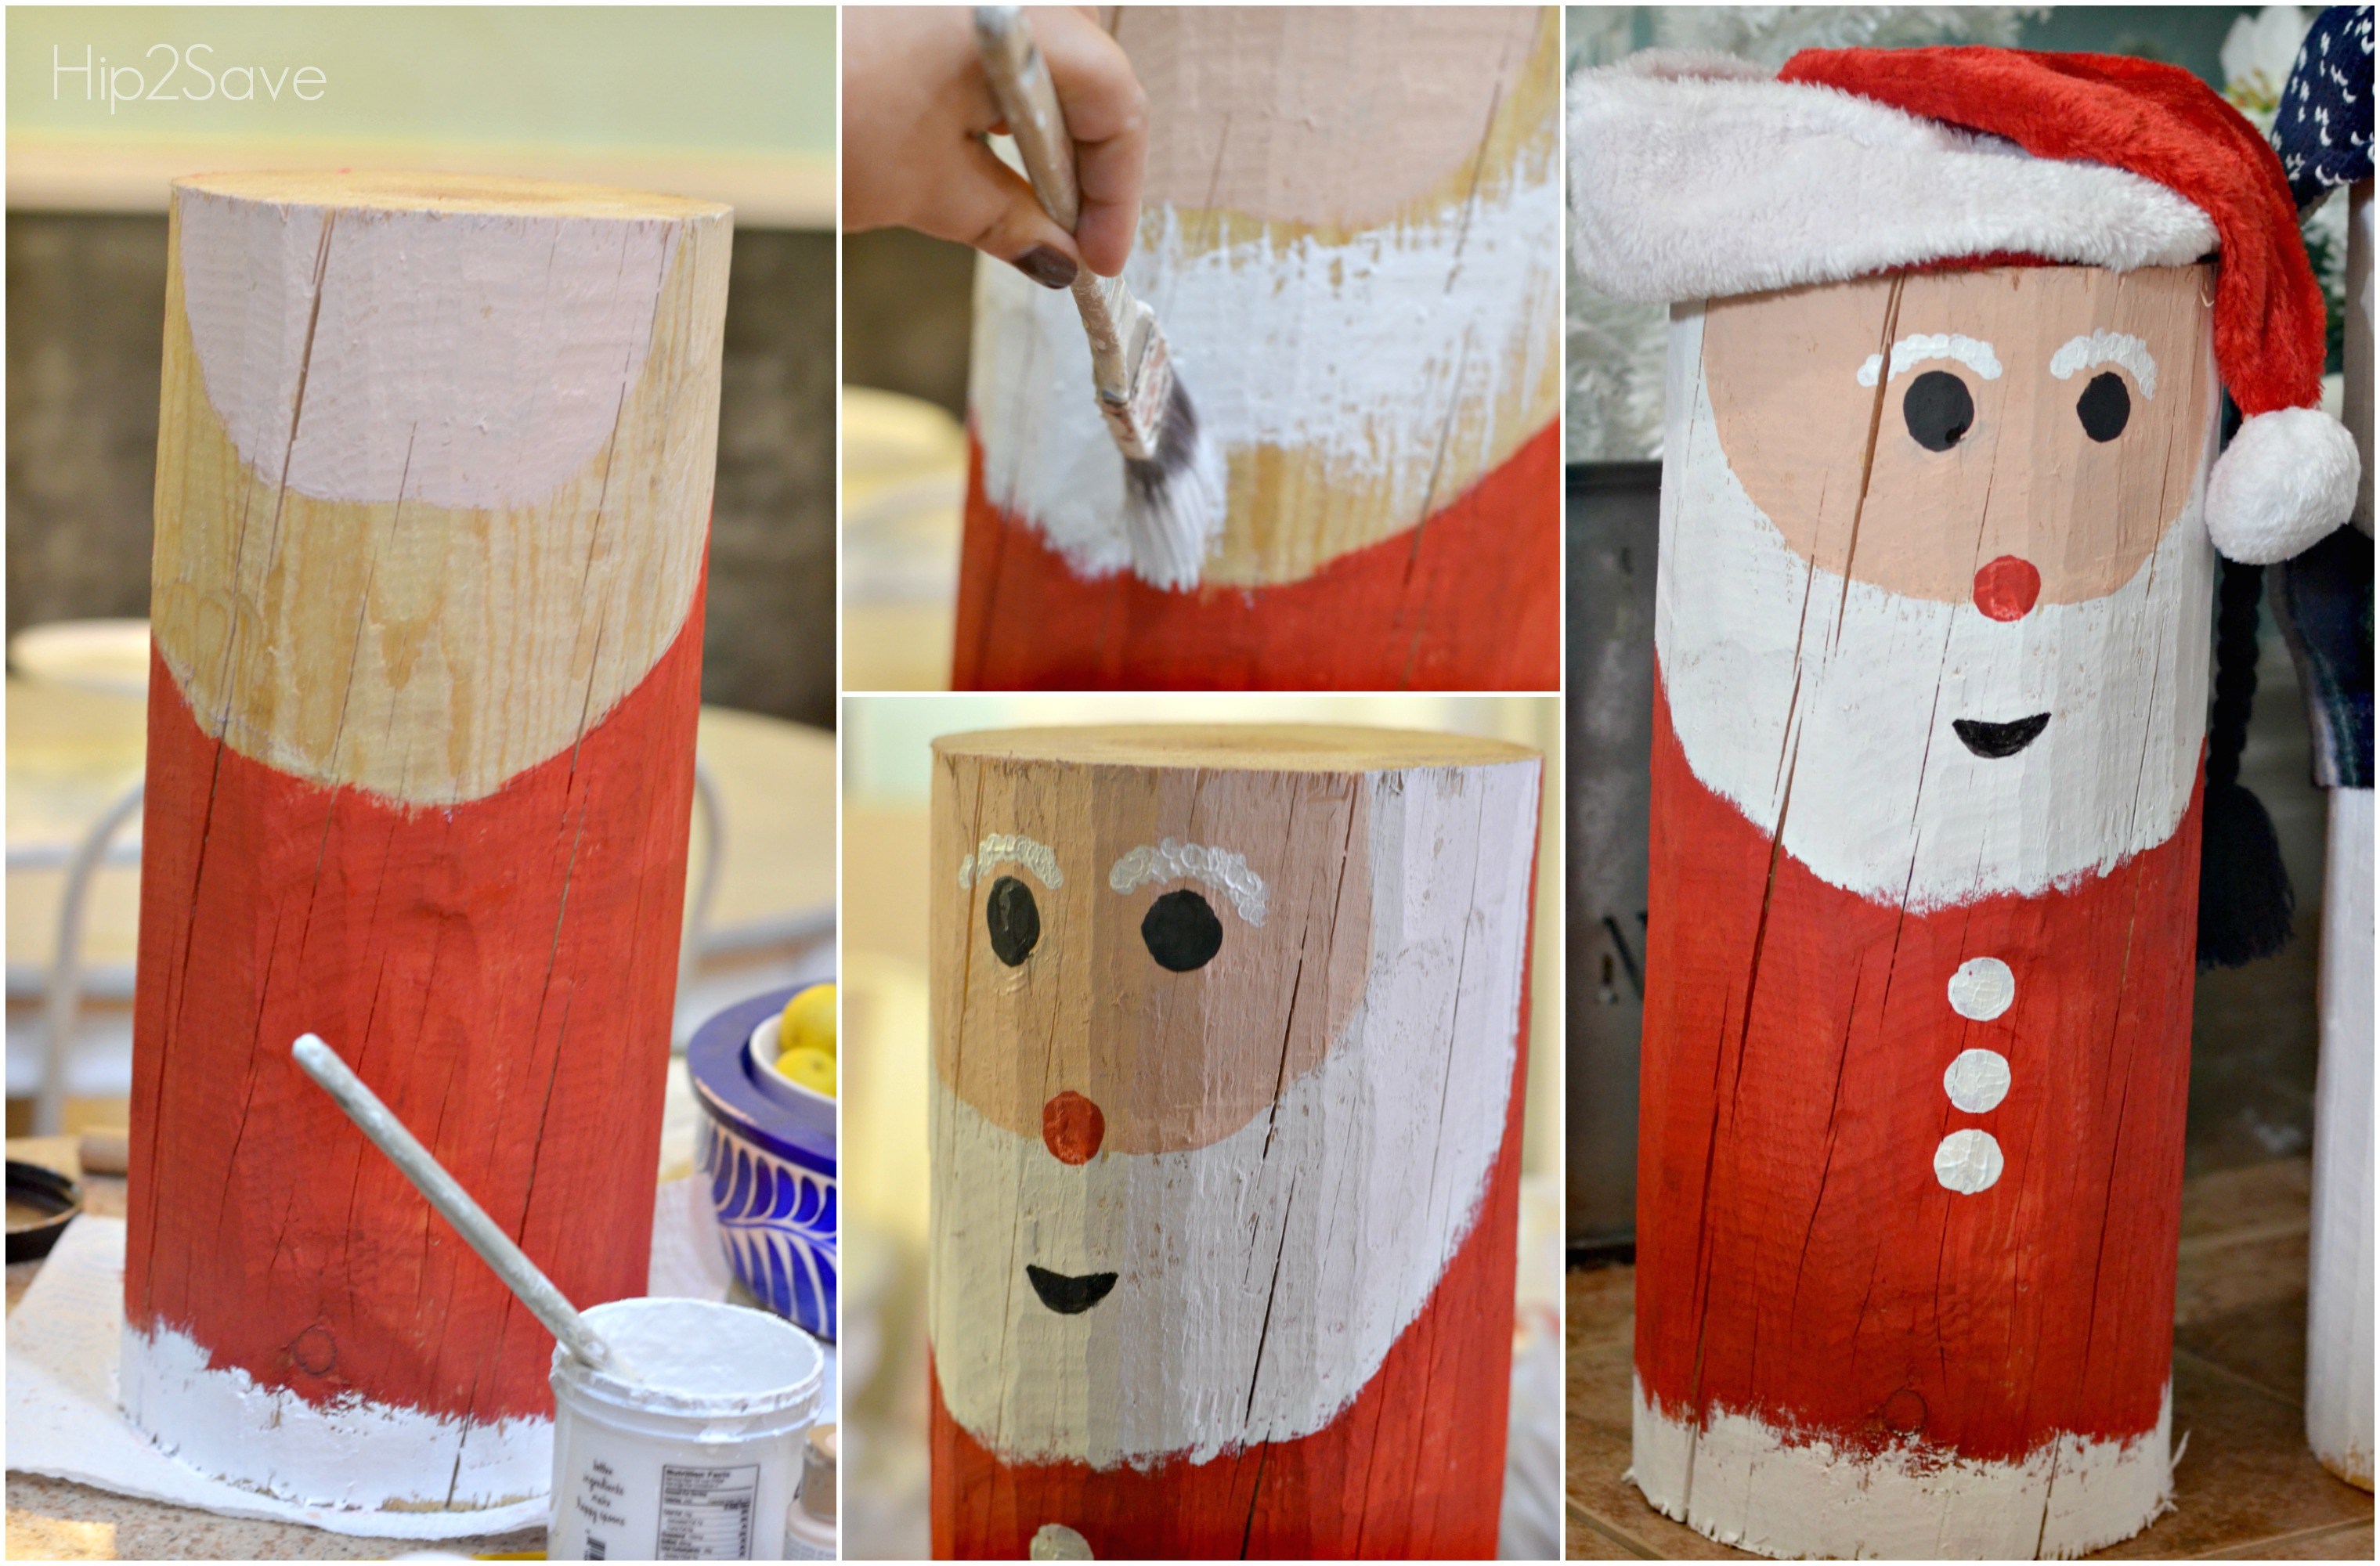 santa-painted-log-by-hip2save-com